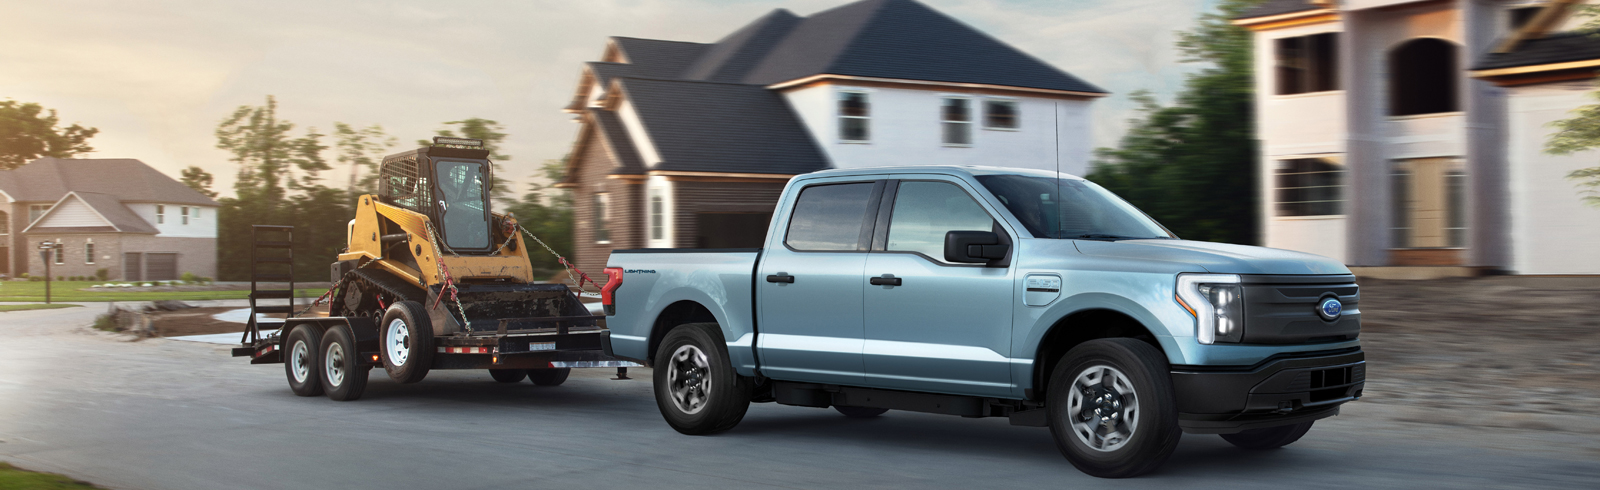 The 2022 Ford F-150 Lightning Pro goes official, targets commercial customers